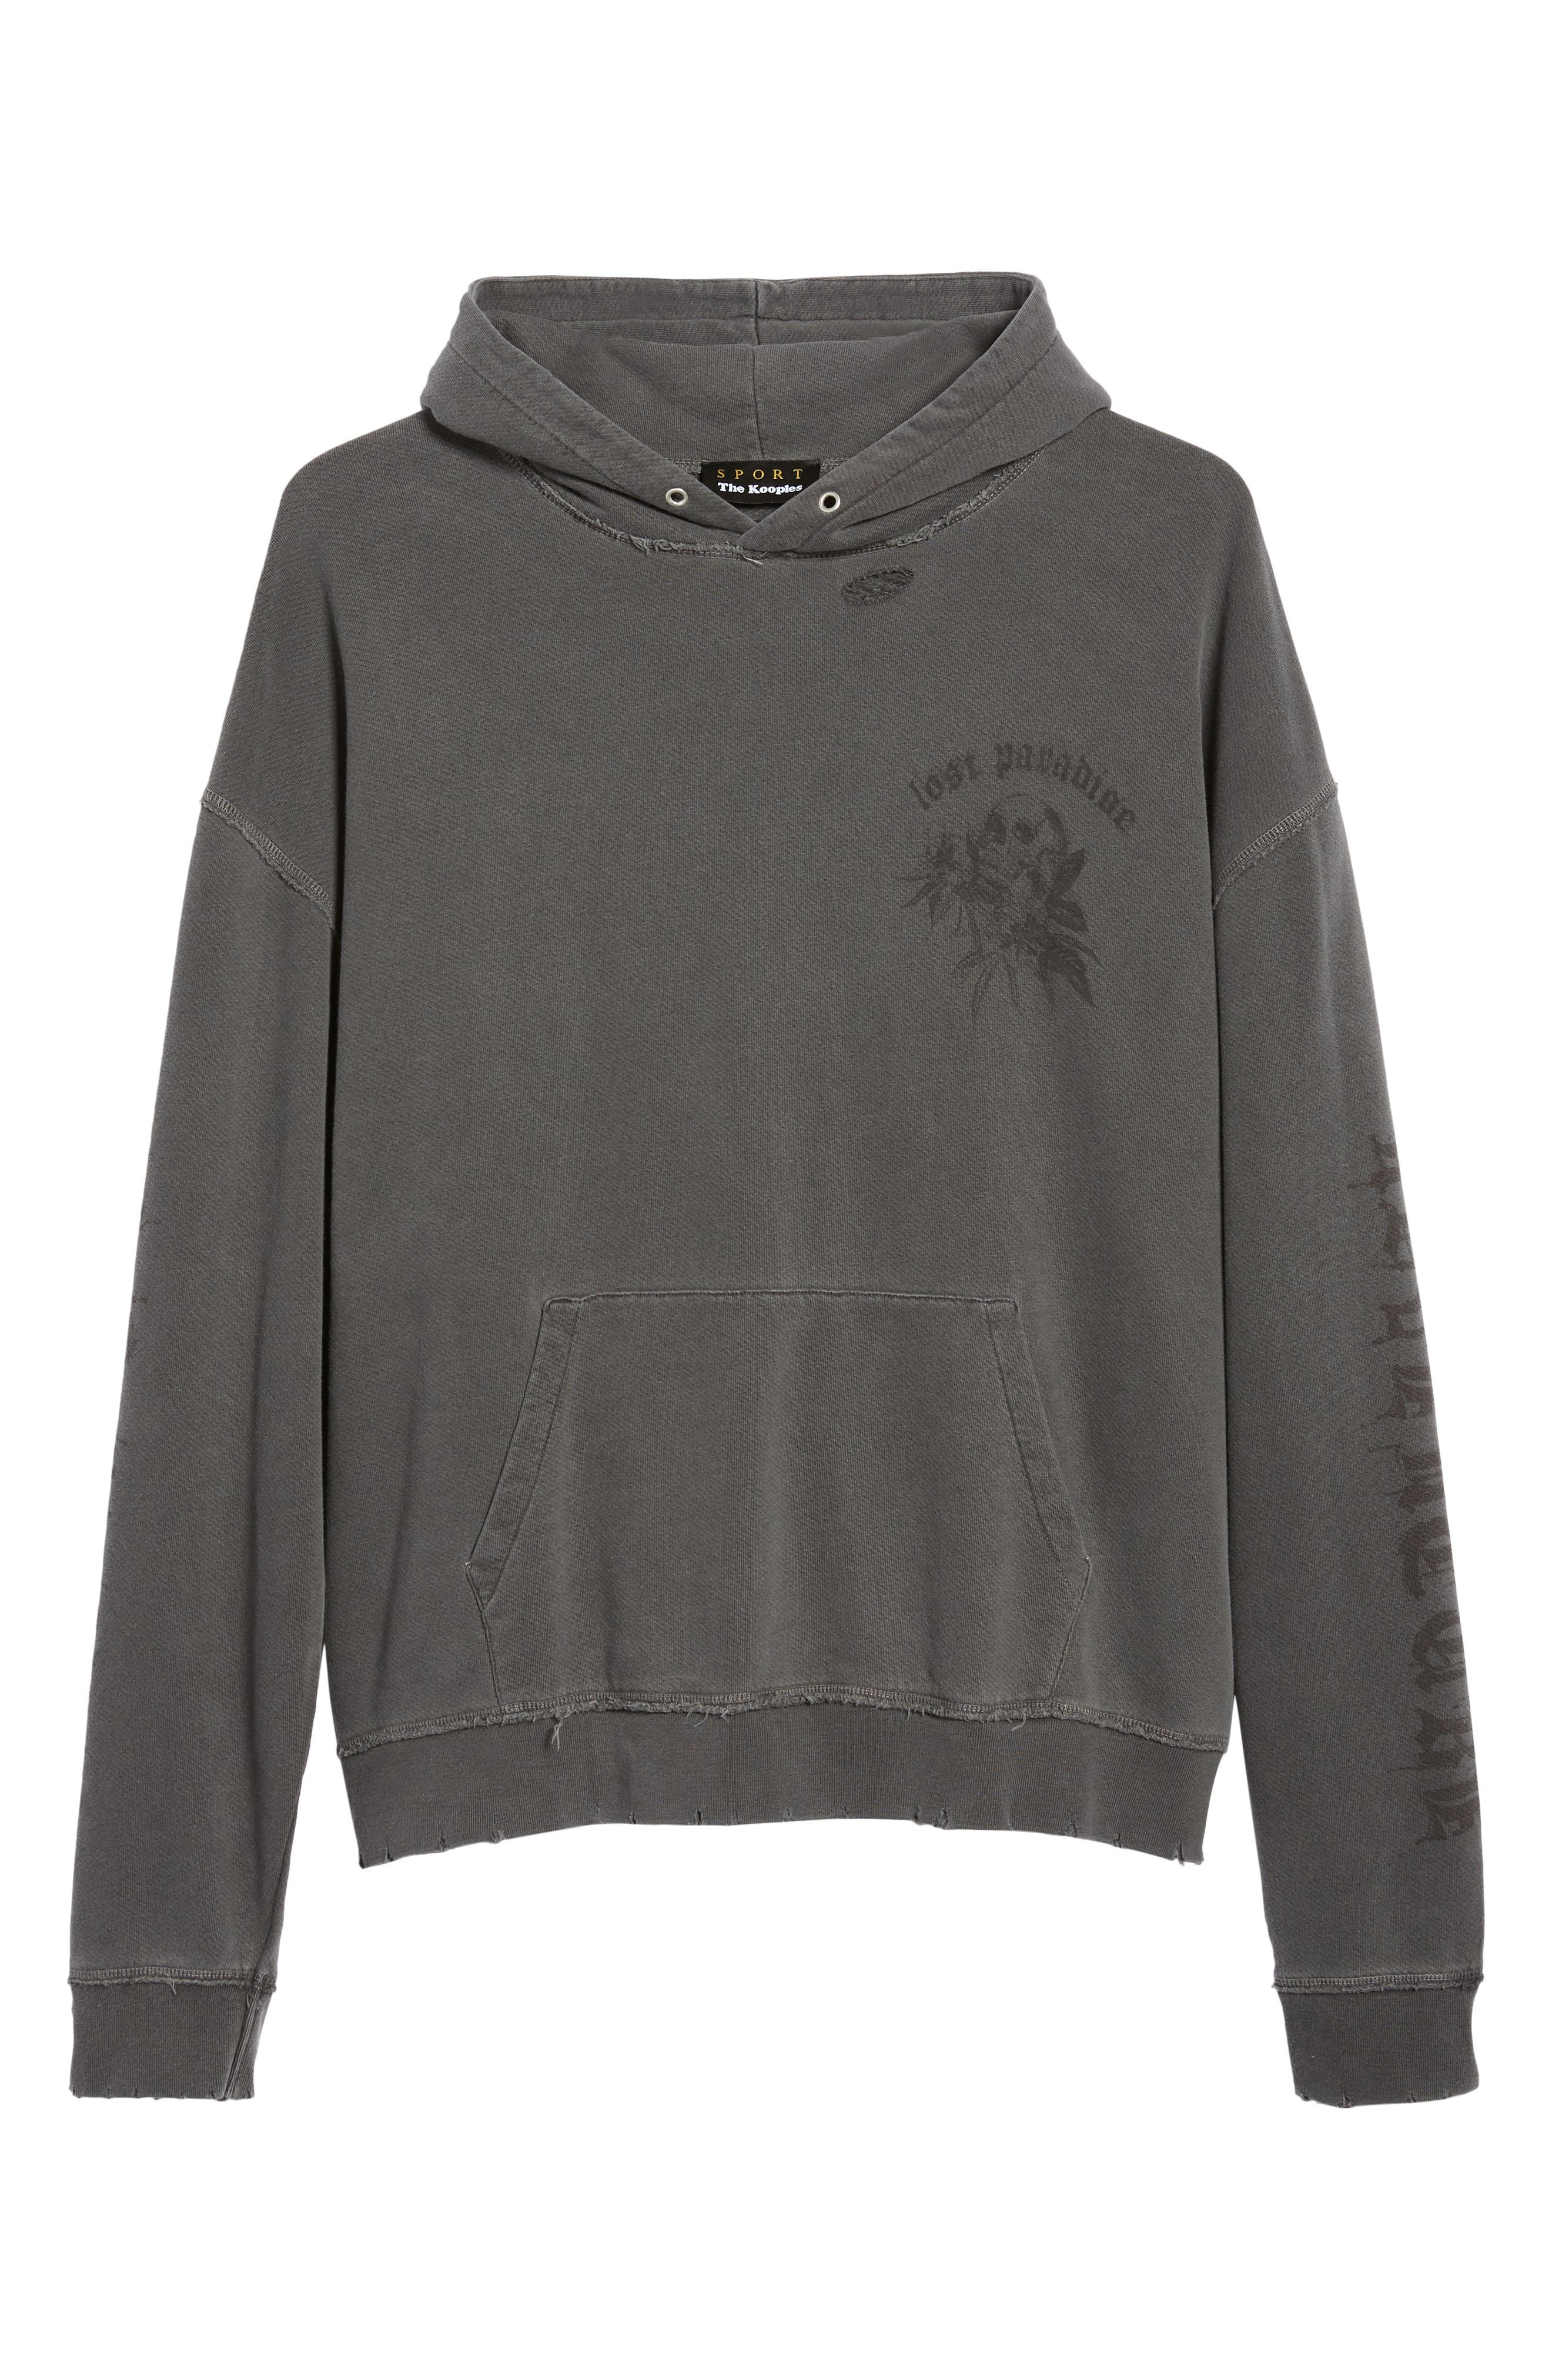 THE KOOPLES, Oversize Hoodie, Alternate thumbnail 6, color, 050